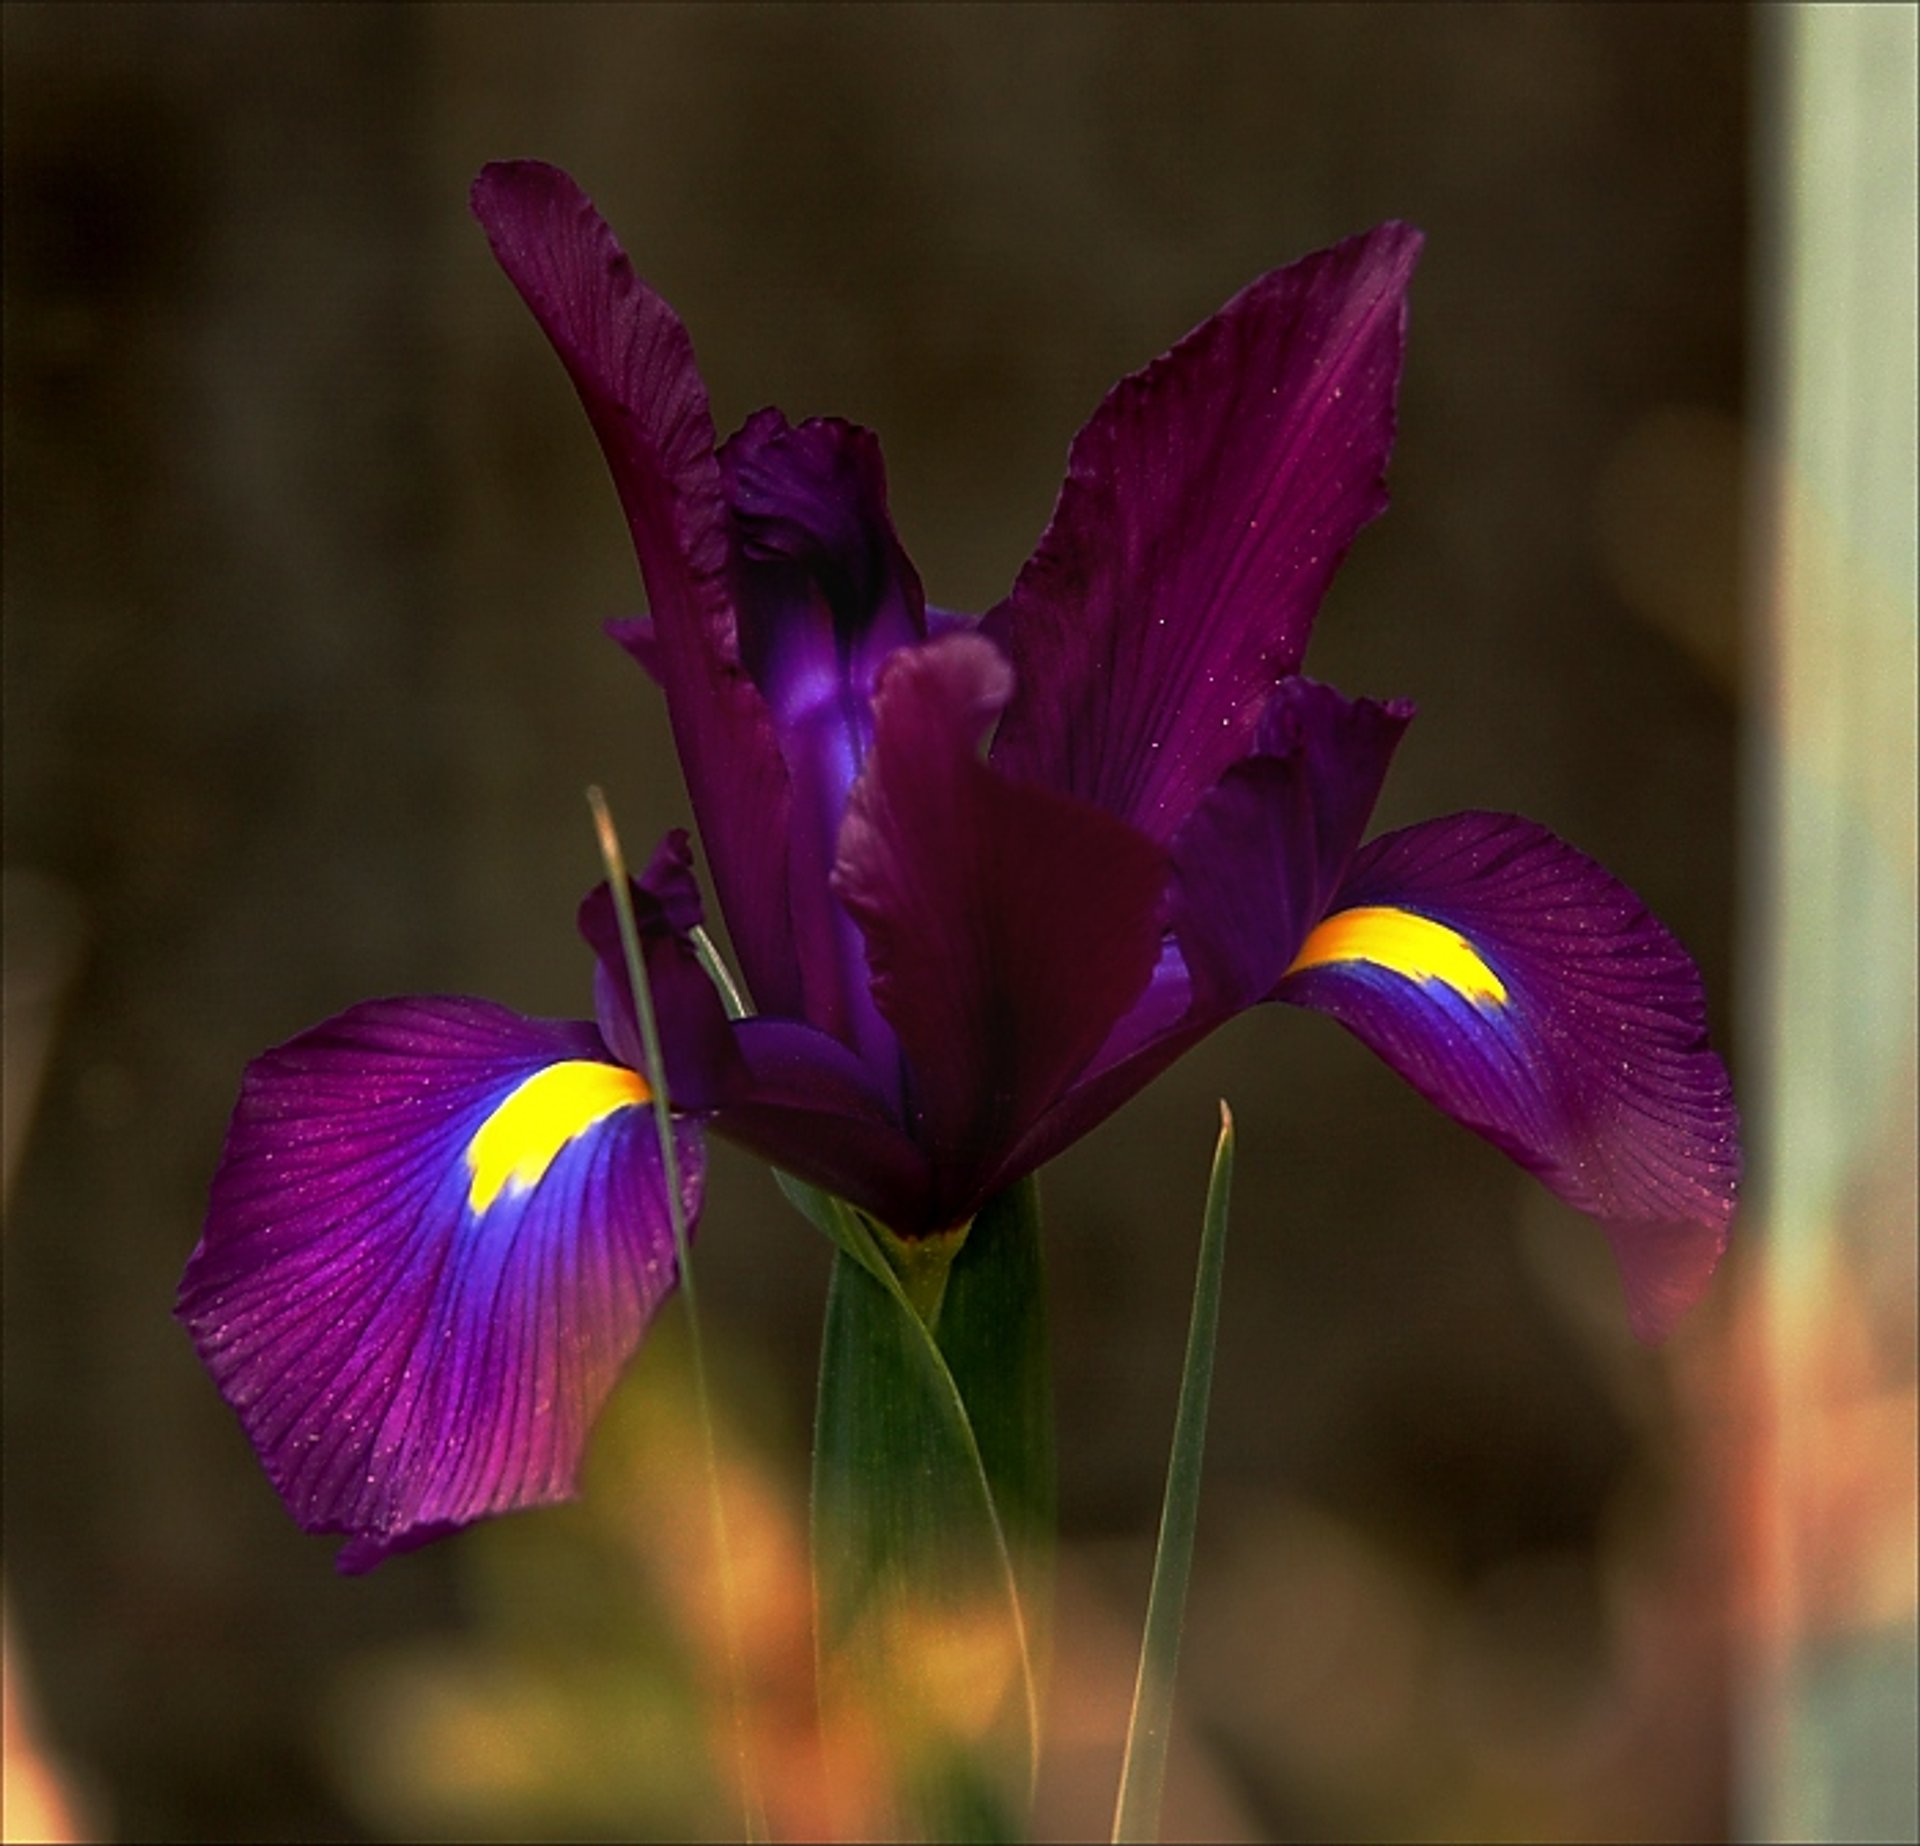 Black iris flower in Amman, Jordan 2020